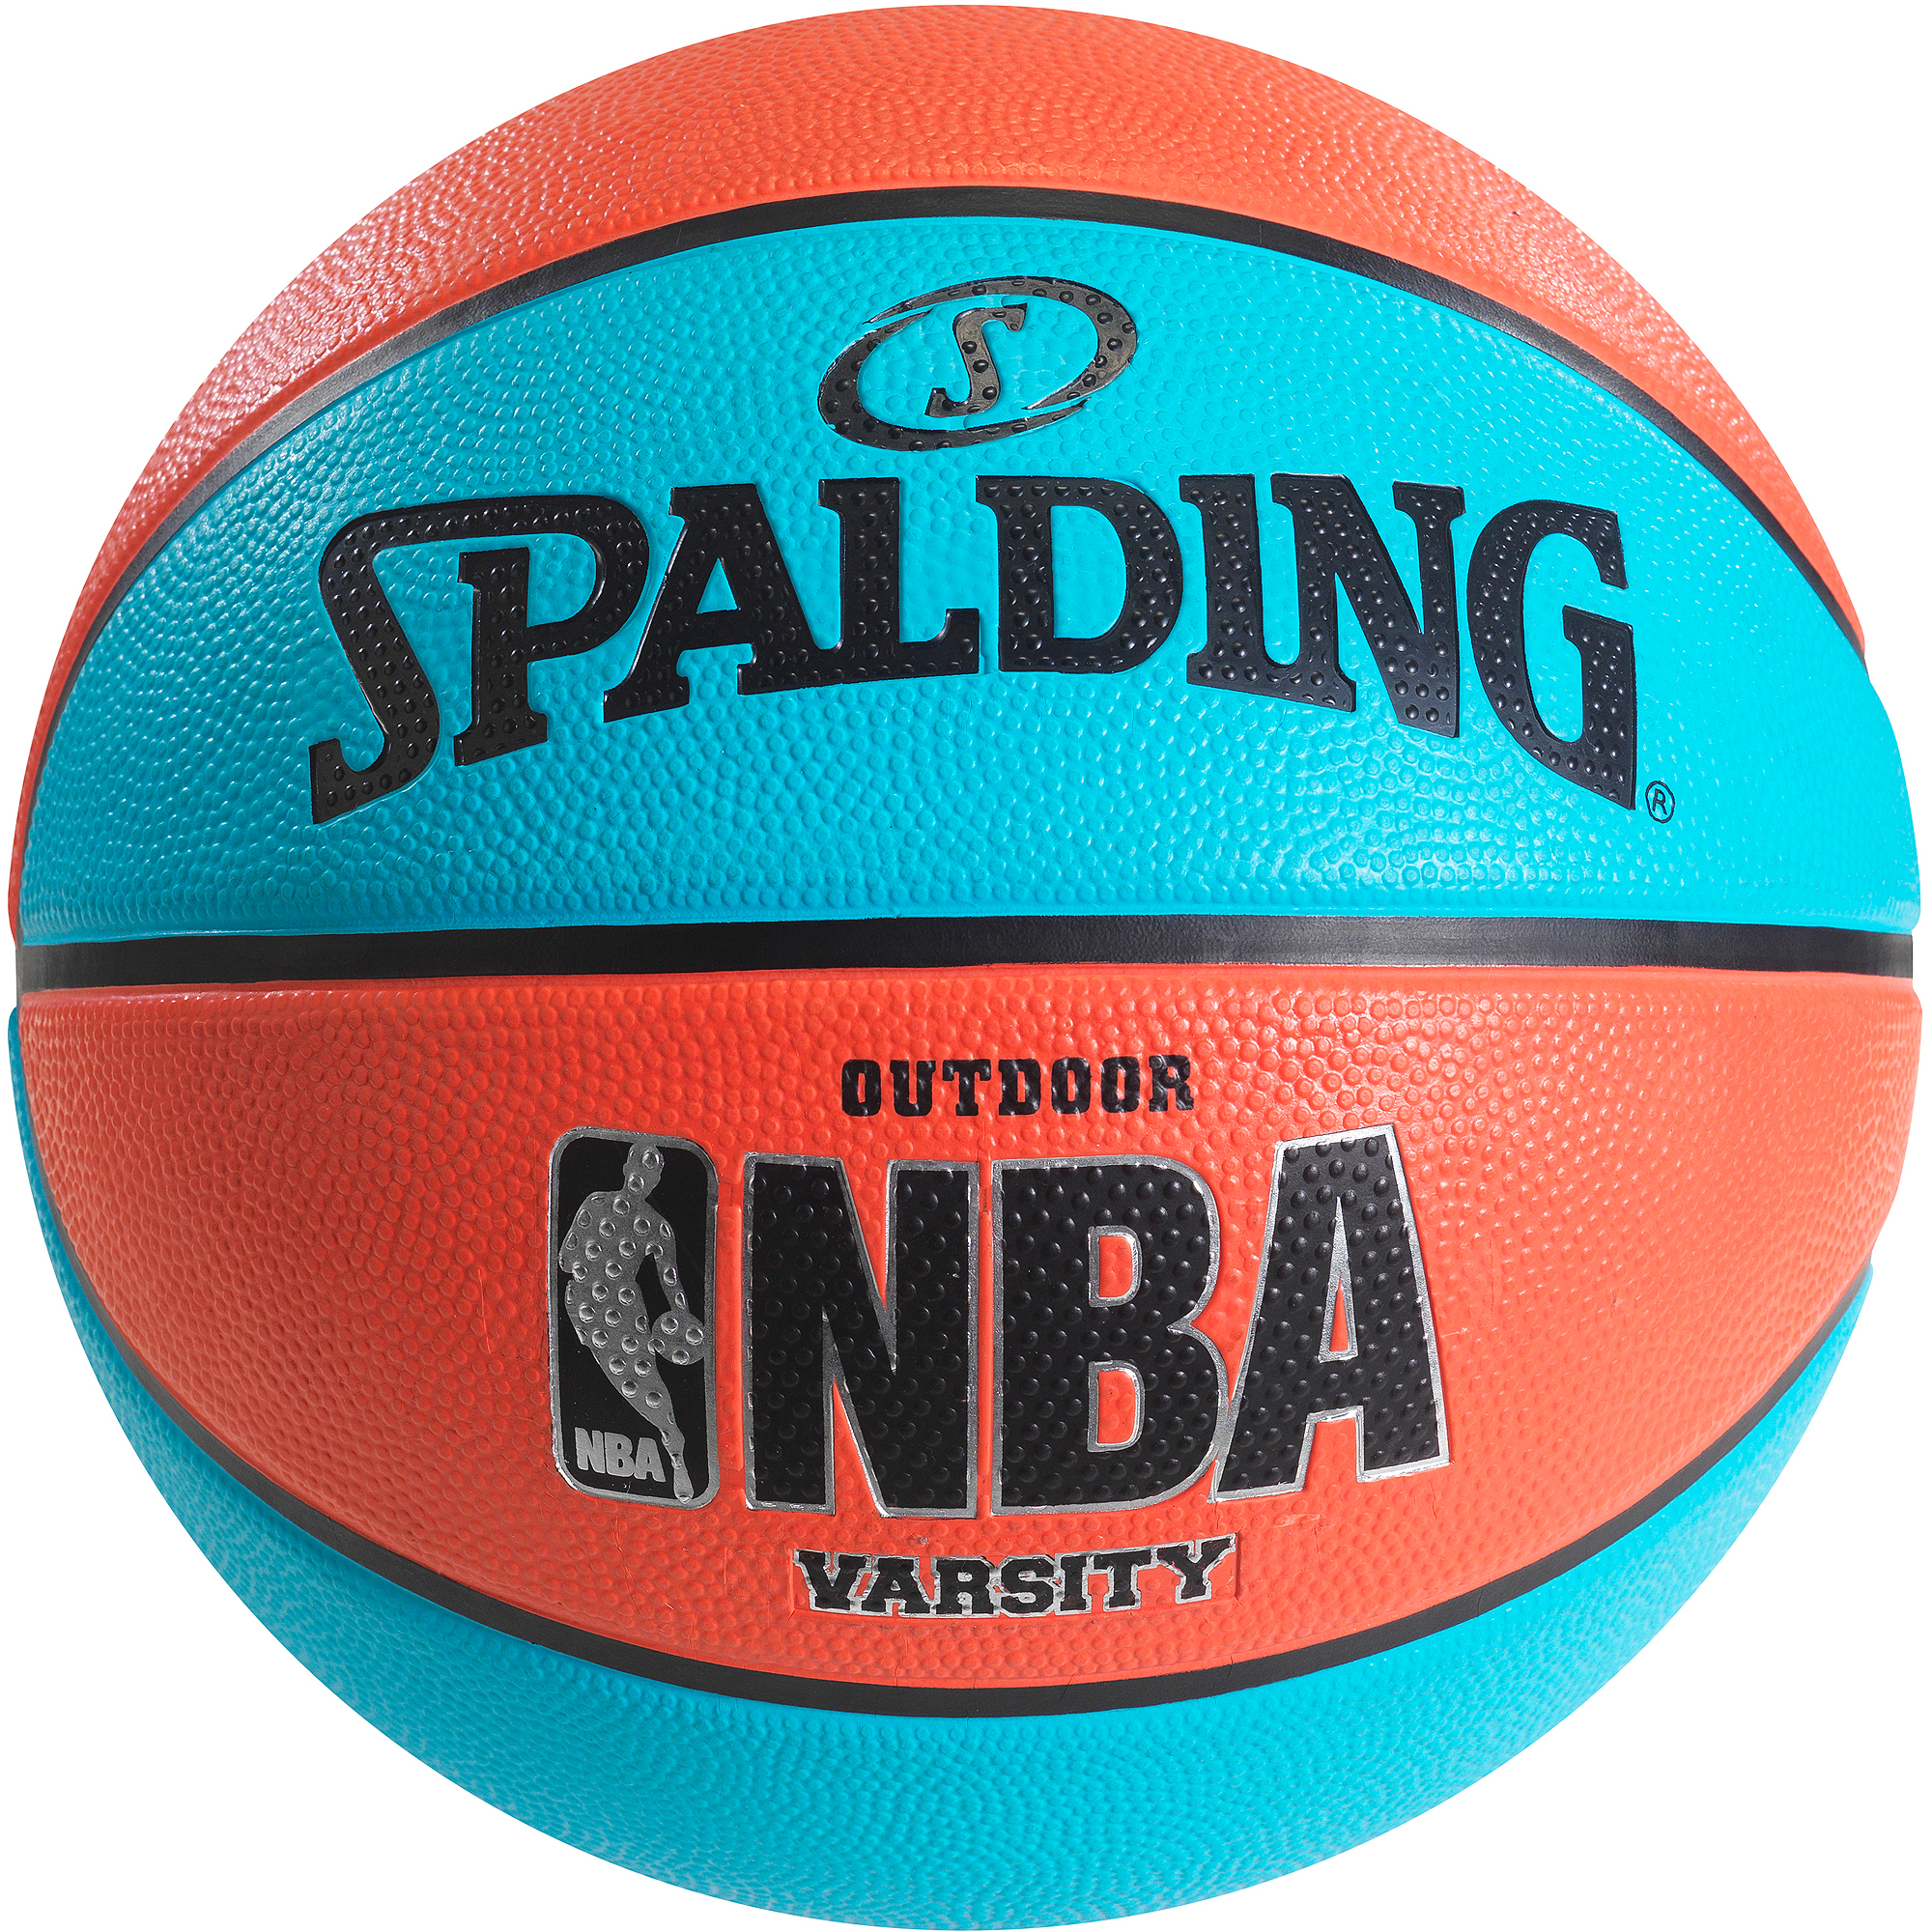 "Spalding NBA Varsity Neon Blue/Salmon 29.5"" Basketball"